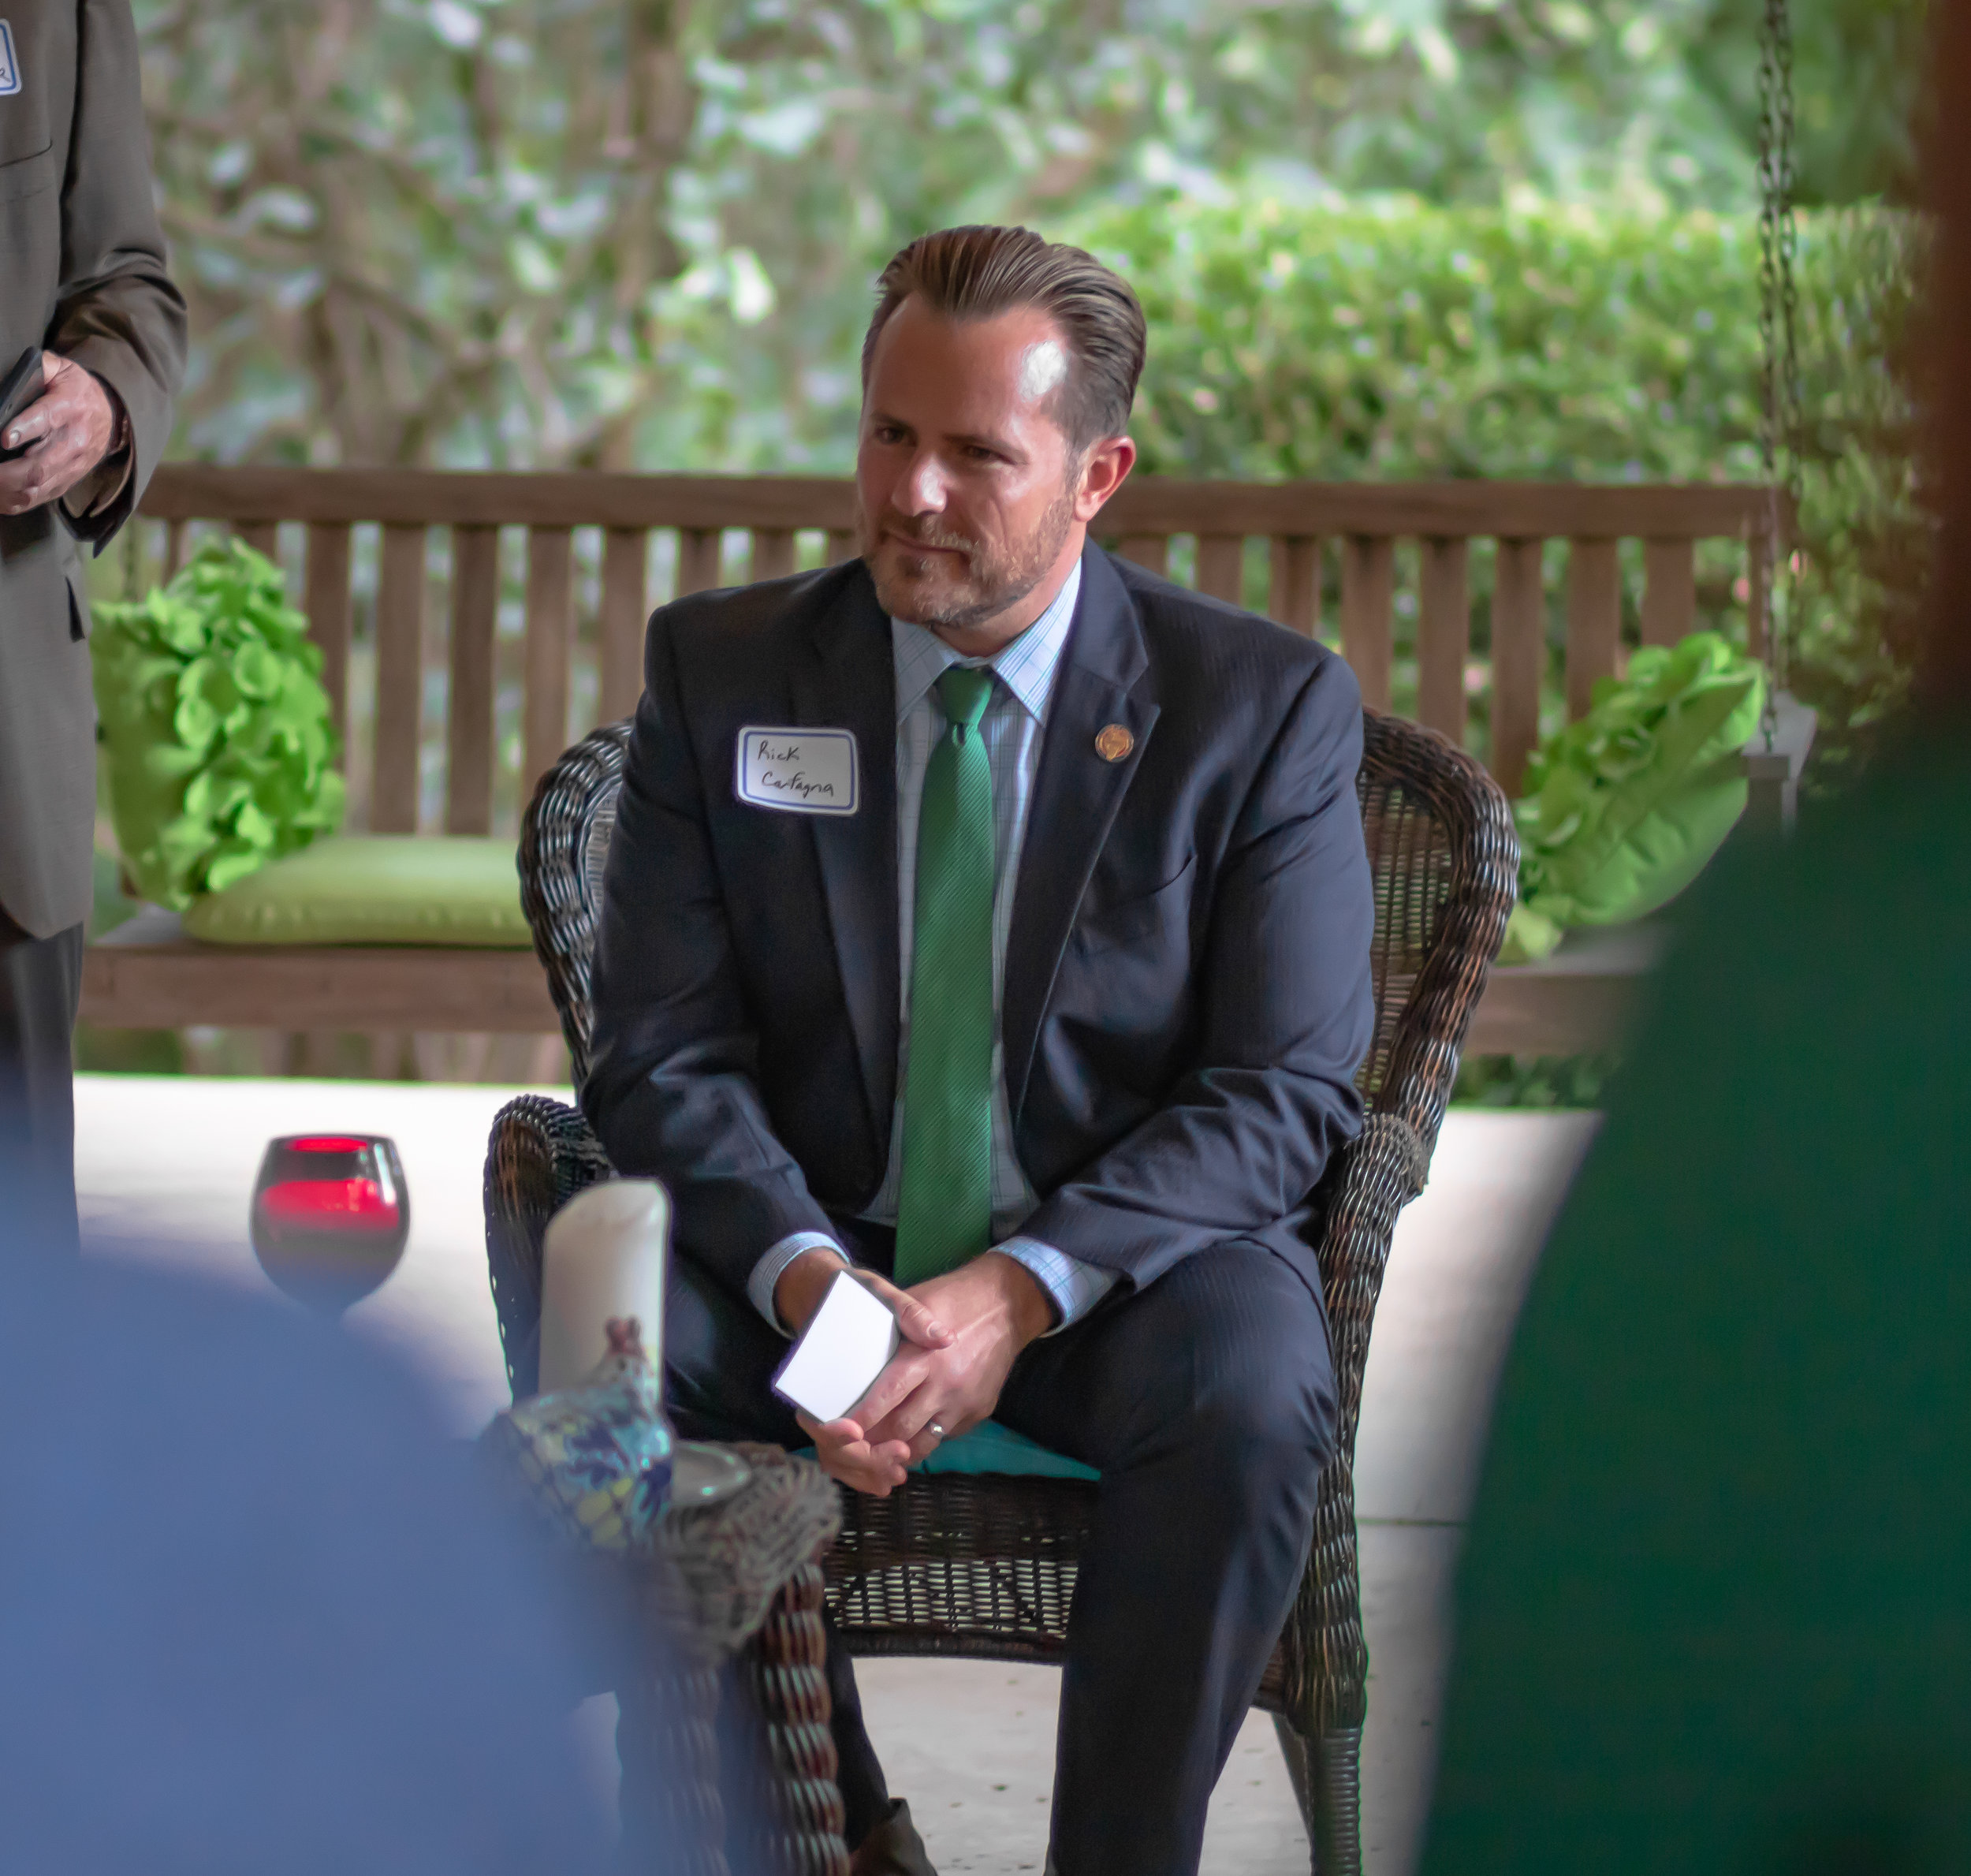 State Representative Rick Carfagna listens to medical students at Dr. Ecklar's home